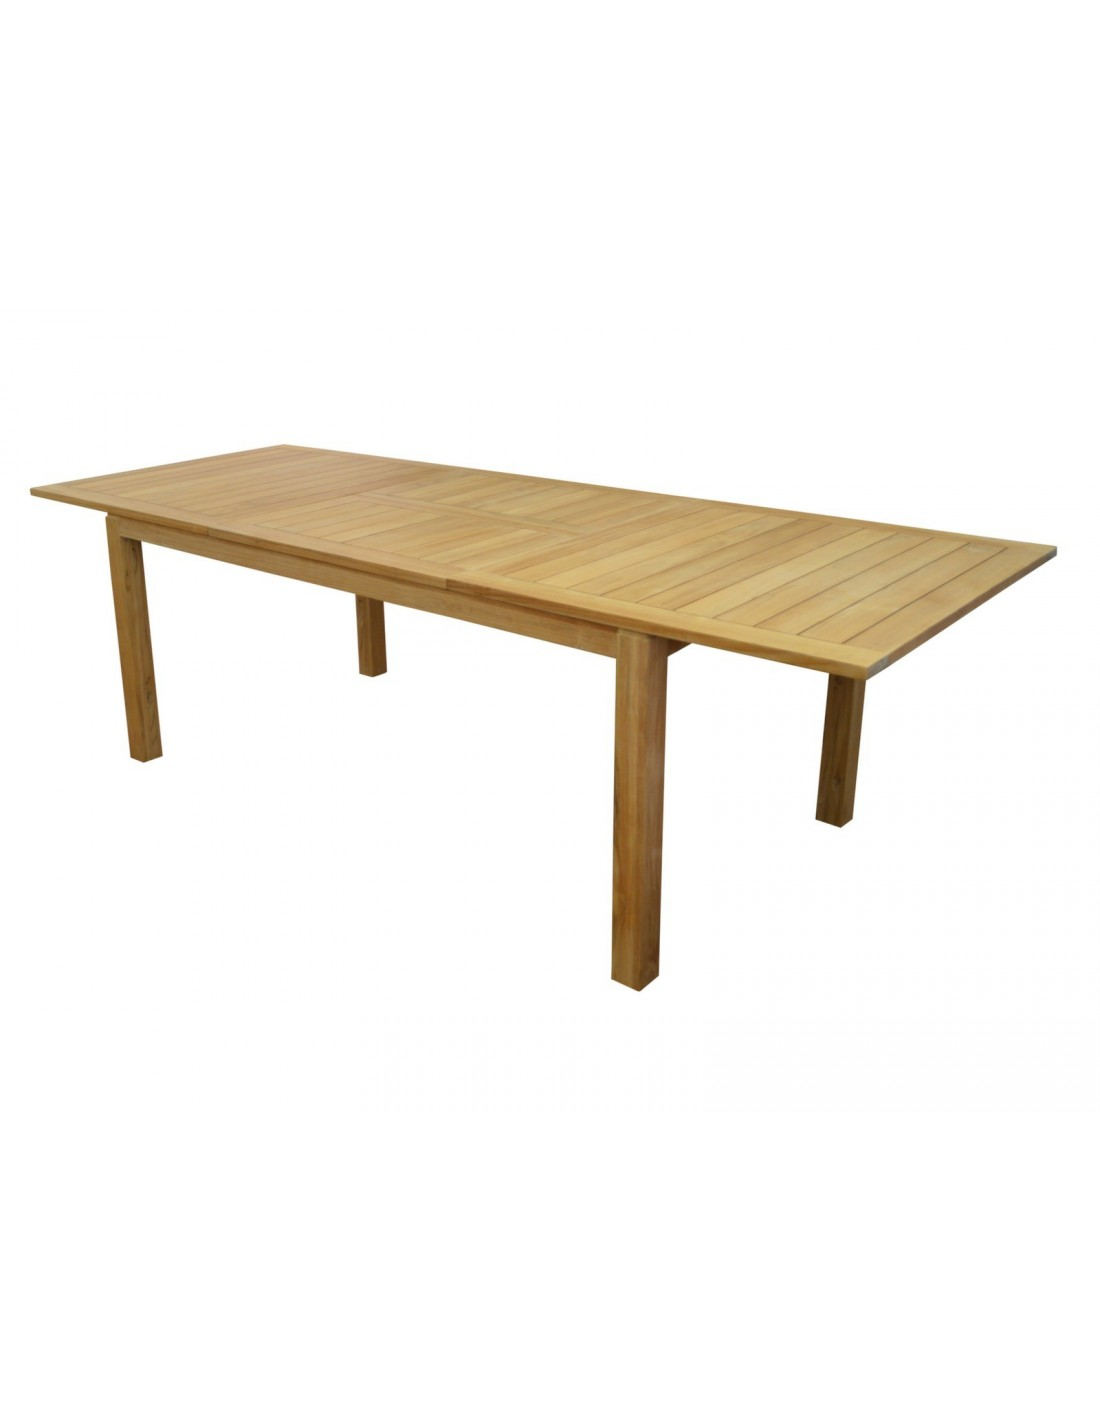 Table de jardin extensible madagascar en teck avec allonge - Table de jardin extensible ...